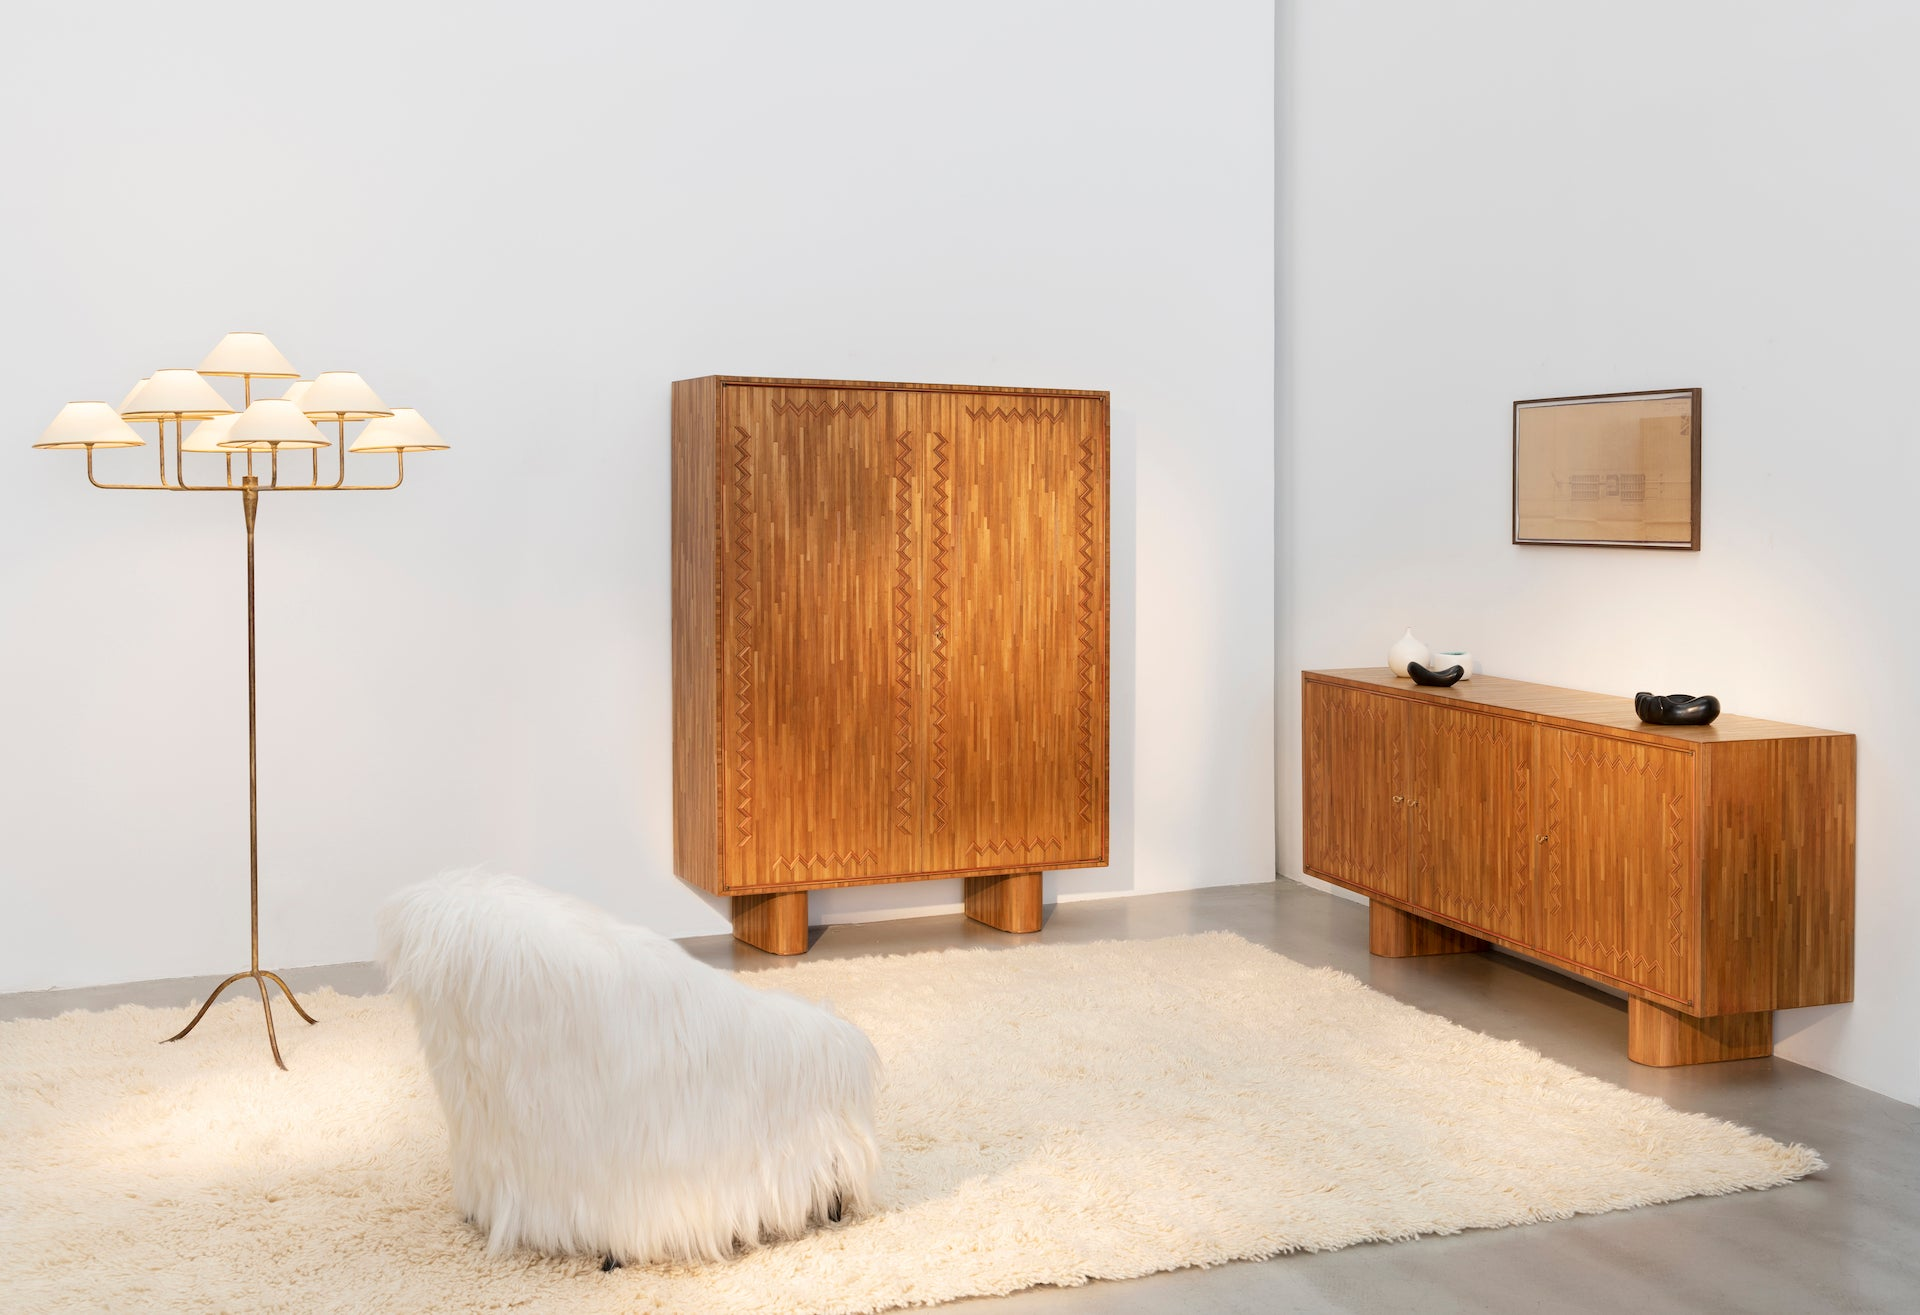 Rare Marquetry Collection by Jean Royère, c. 1951/ Courtesy of Galerie Patrick Seguin.